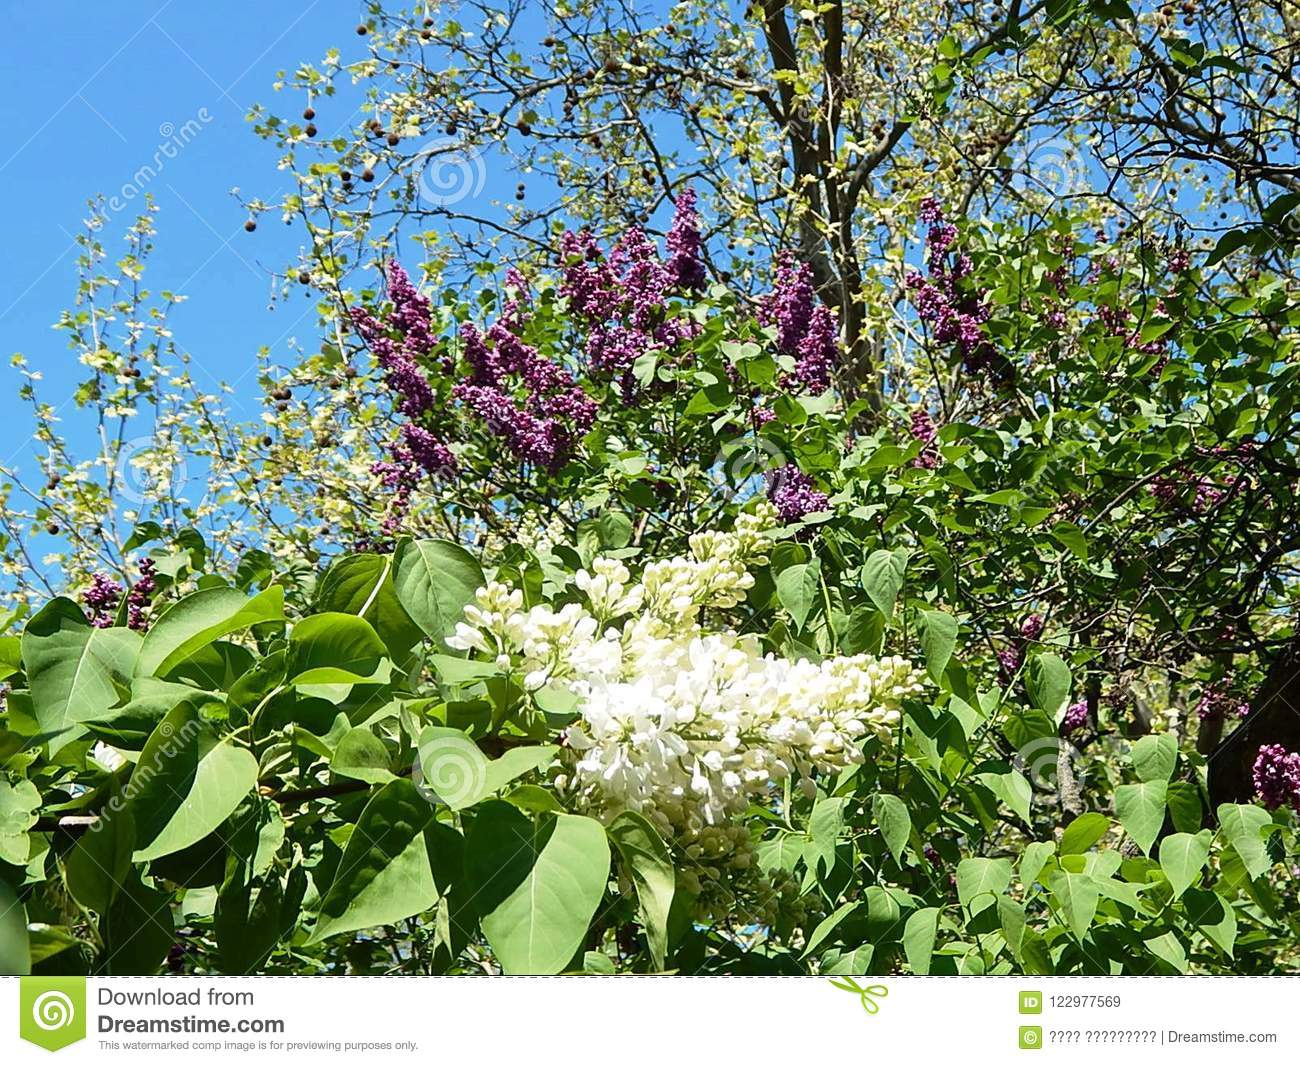 Flowering Branches Of A Lilac Bush With White Flowers Stock Image